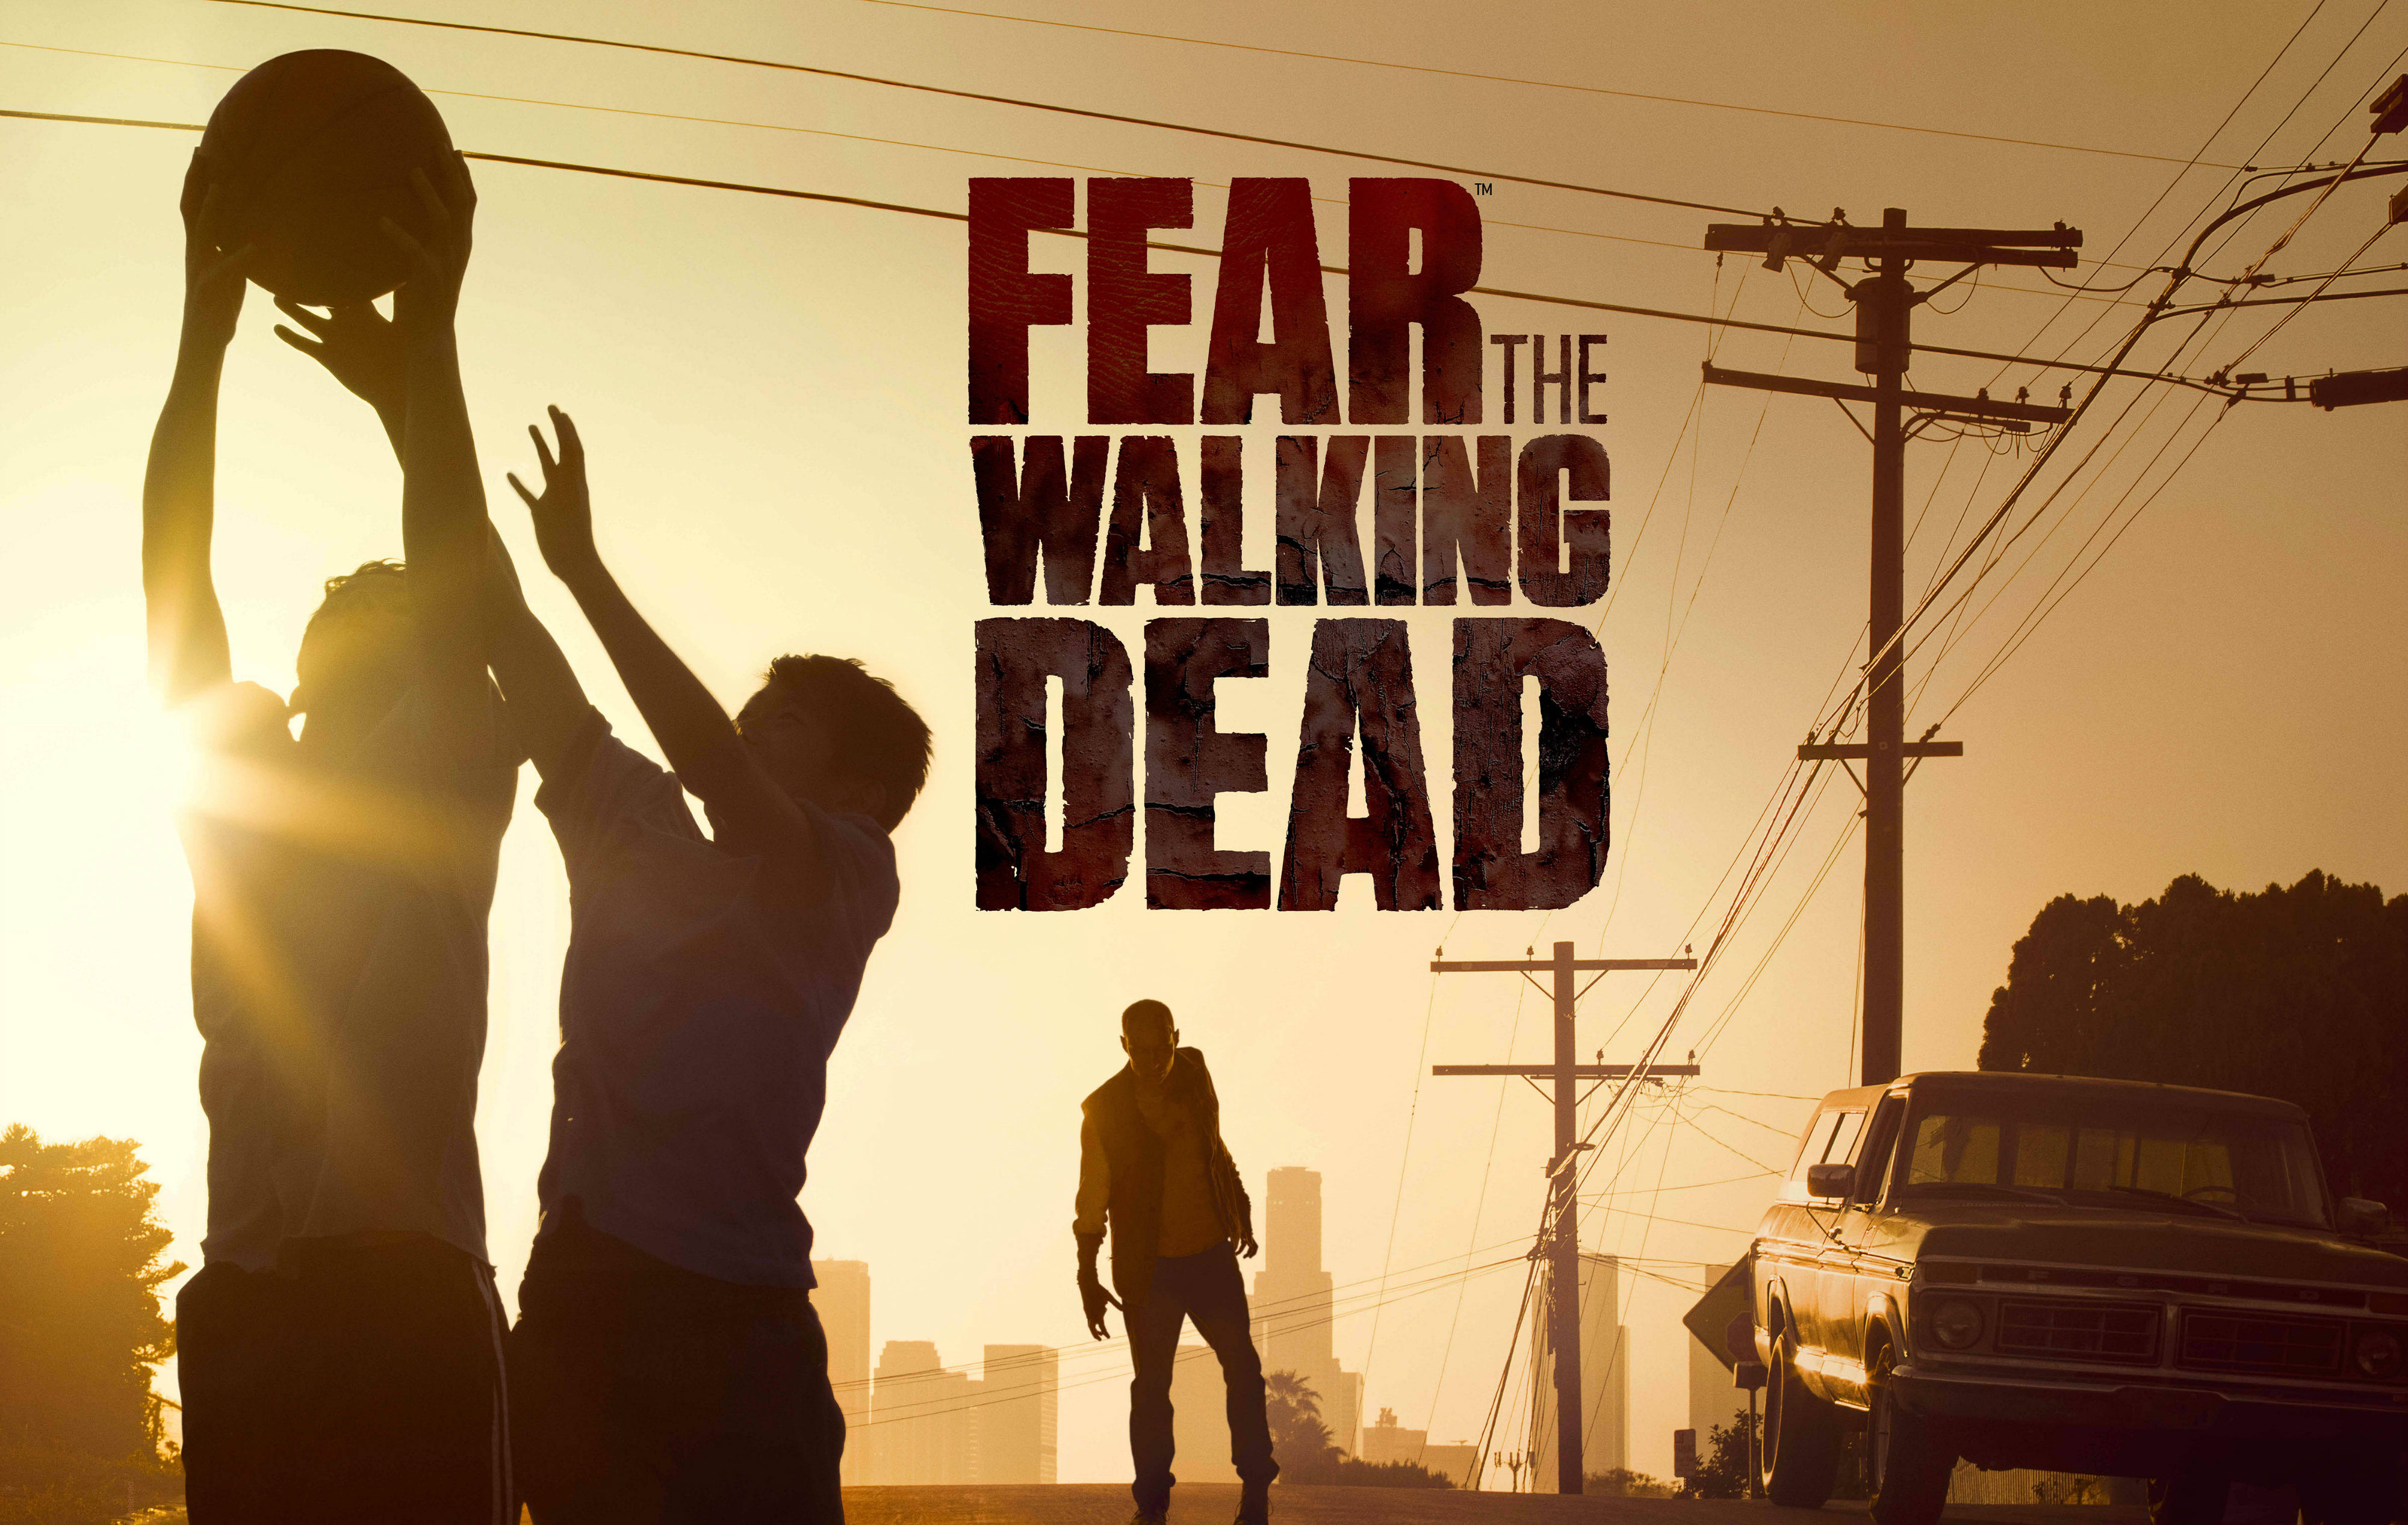 Major 'Fear The Walking Dead' Death Requested By Actor